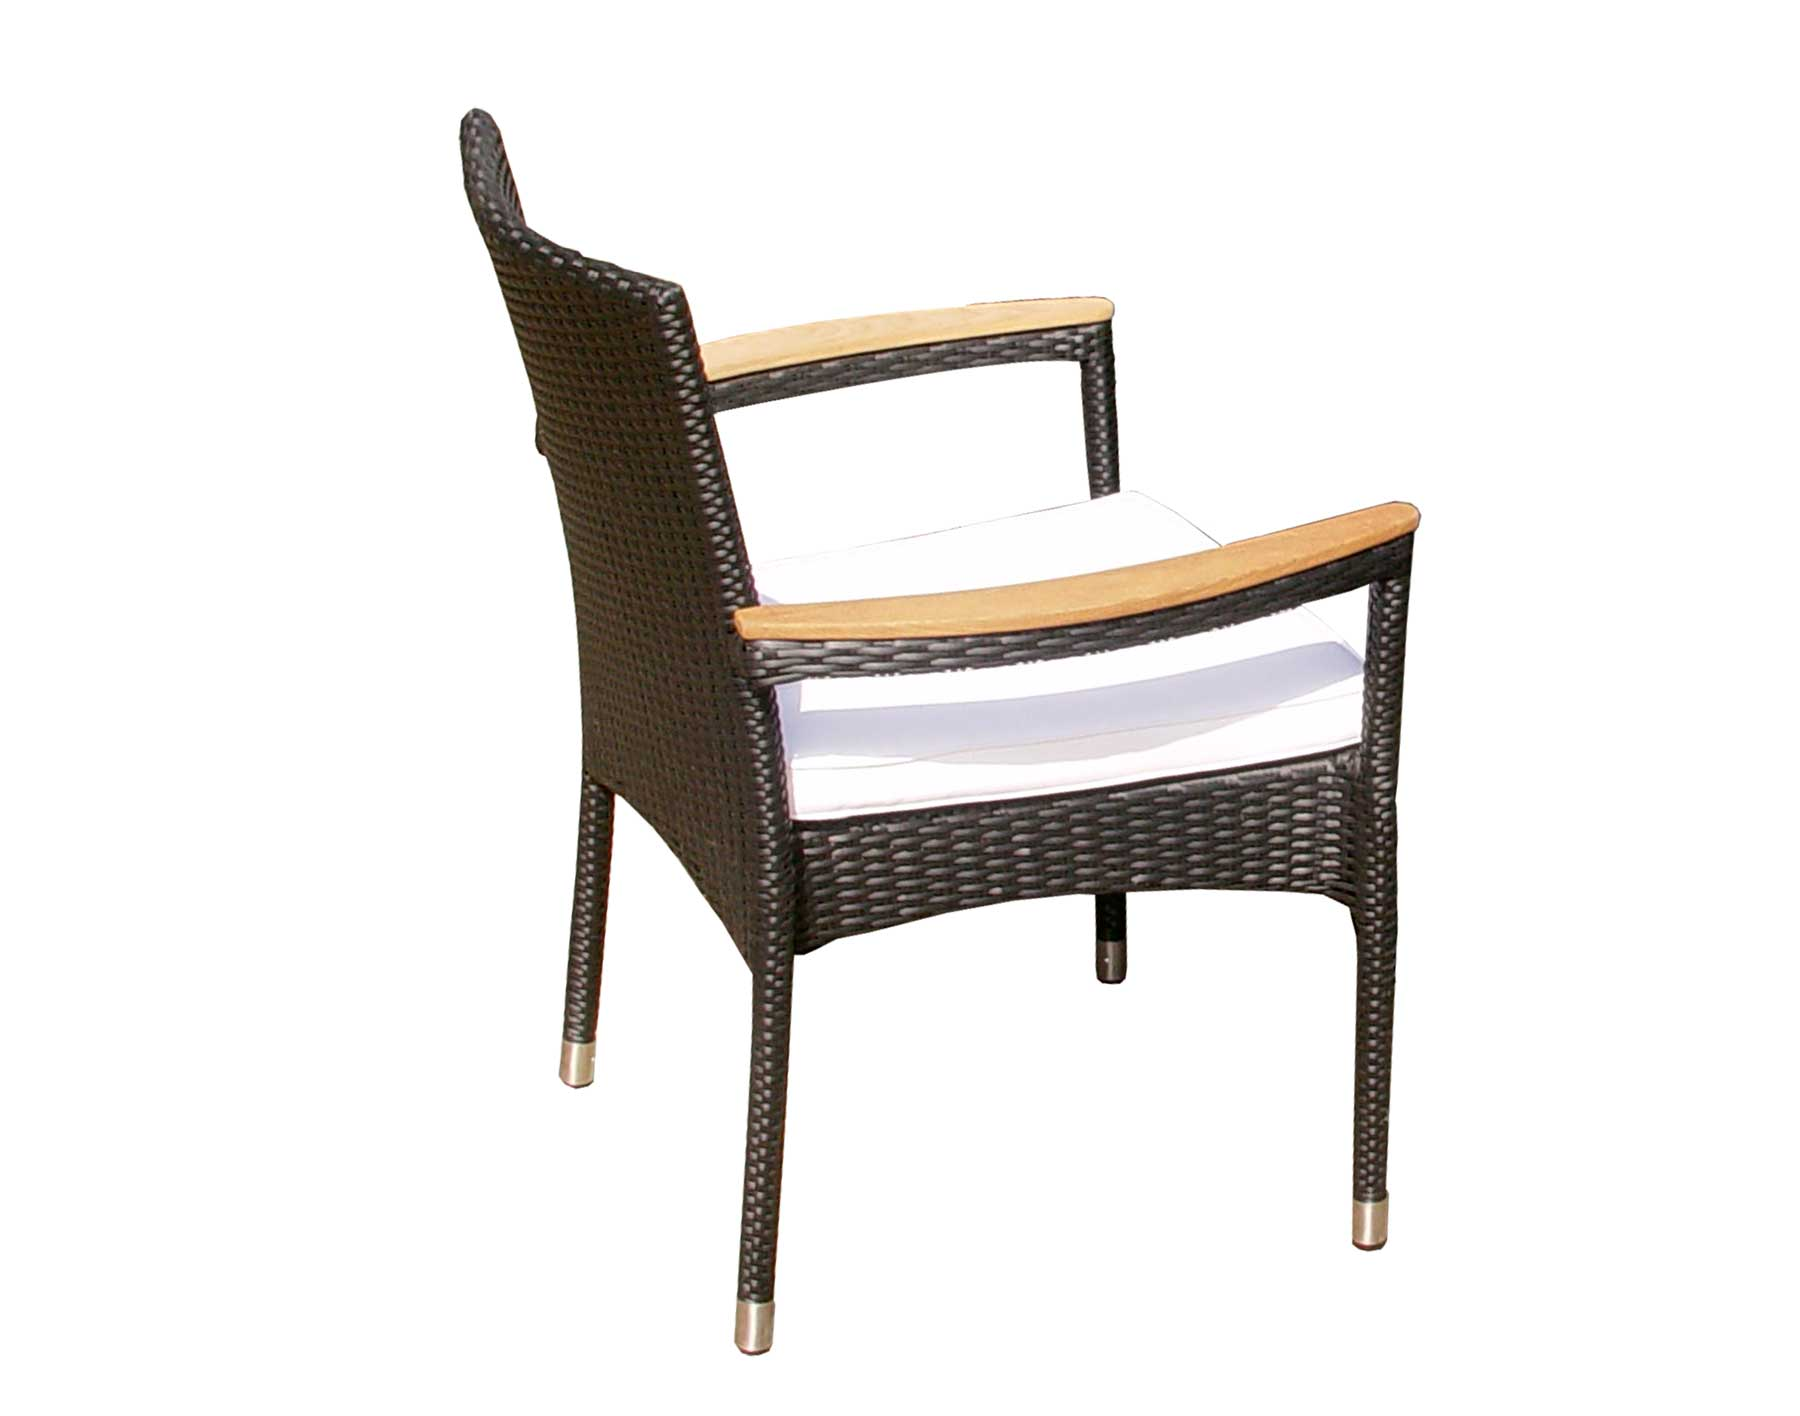 48 Black Wicker Dining Table And Wicker Stacking Chair Set